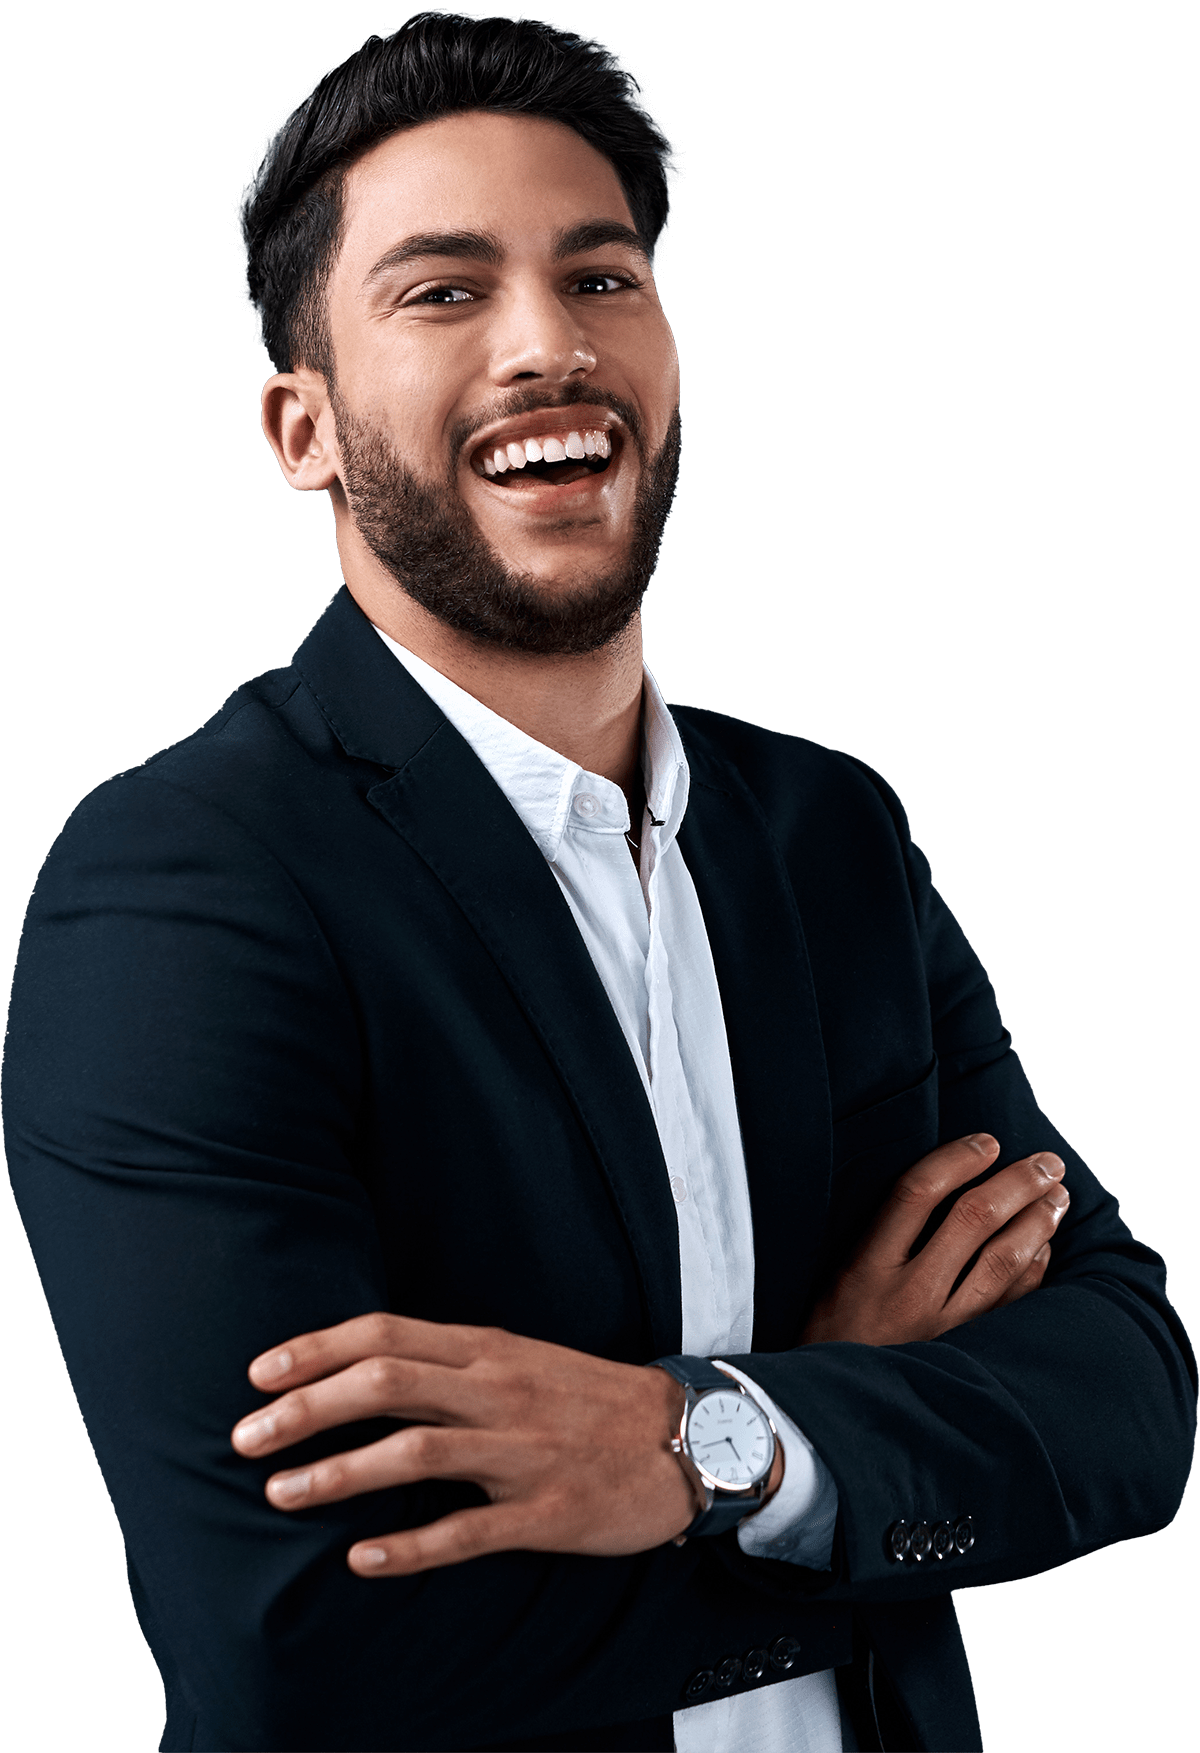 Man in suit jacket smiling with his arms crossed